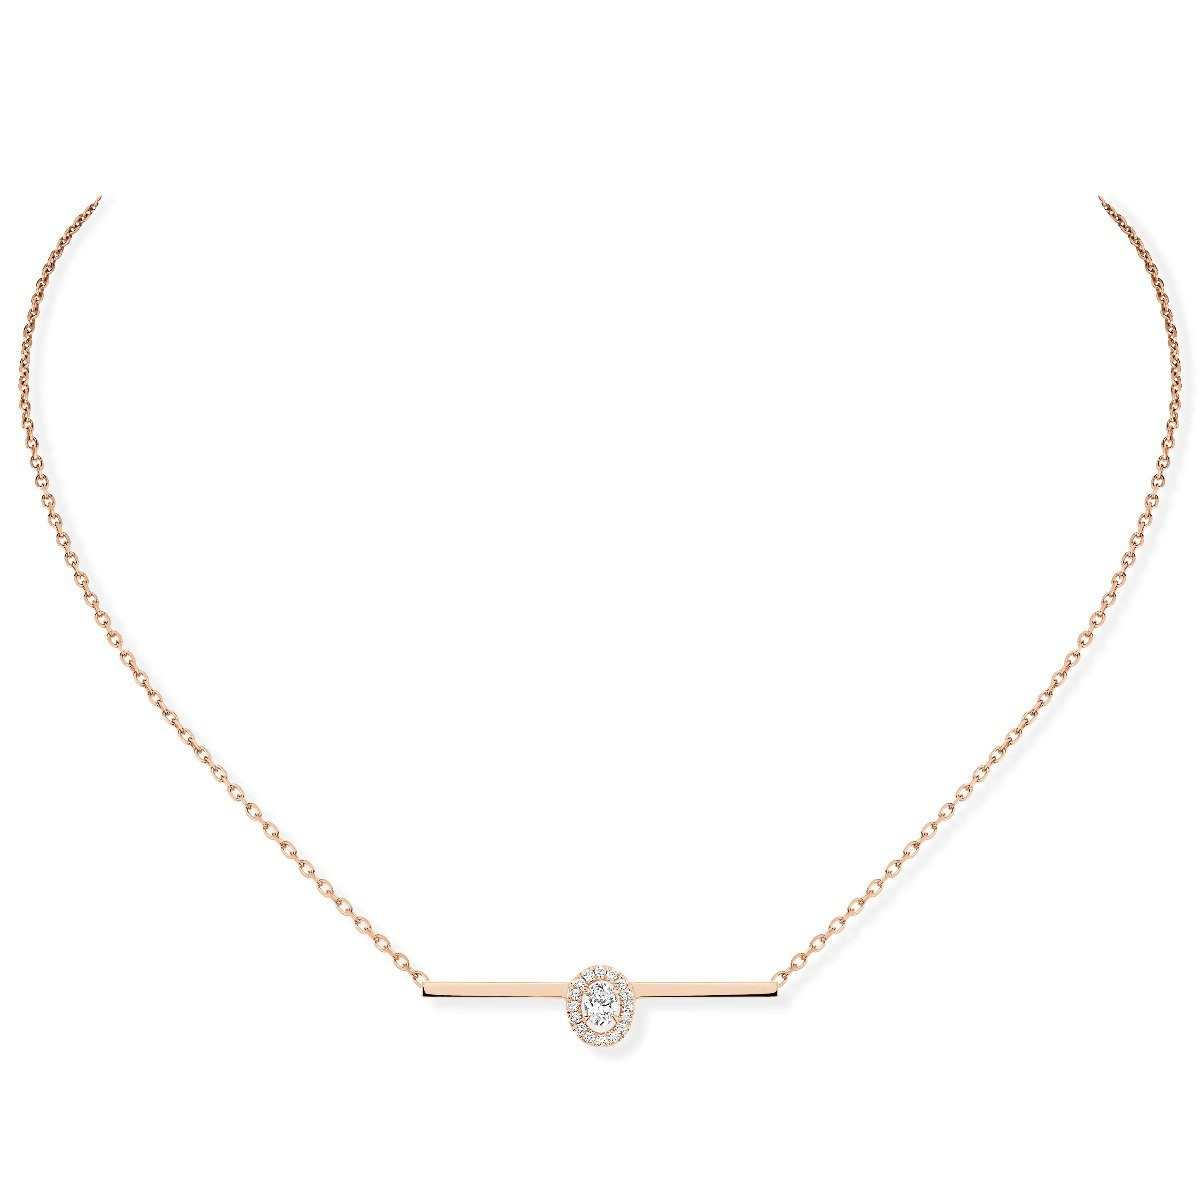 Messika Glam'Azone Diamond Oval Bar Necklace in 18K Gold front view